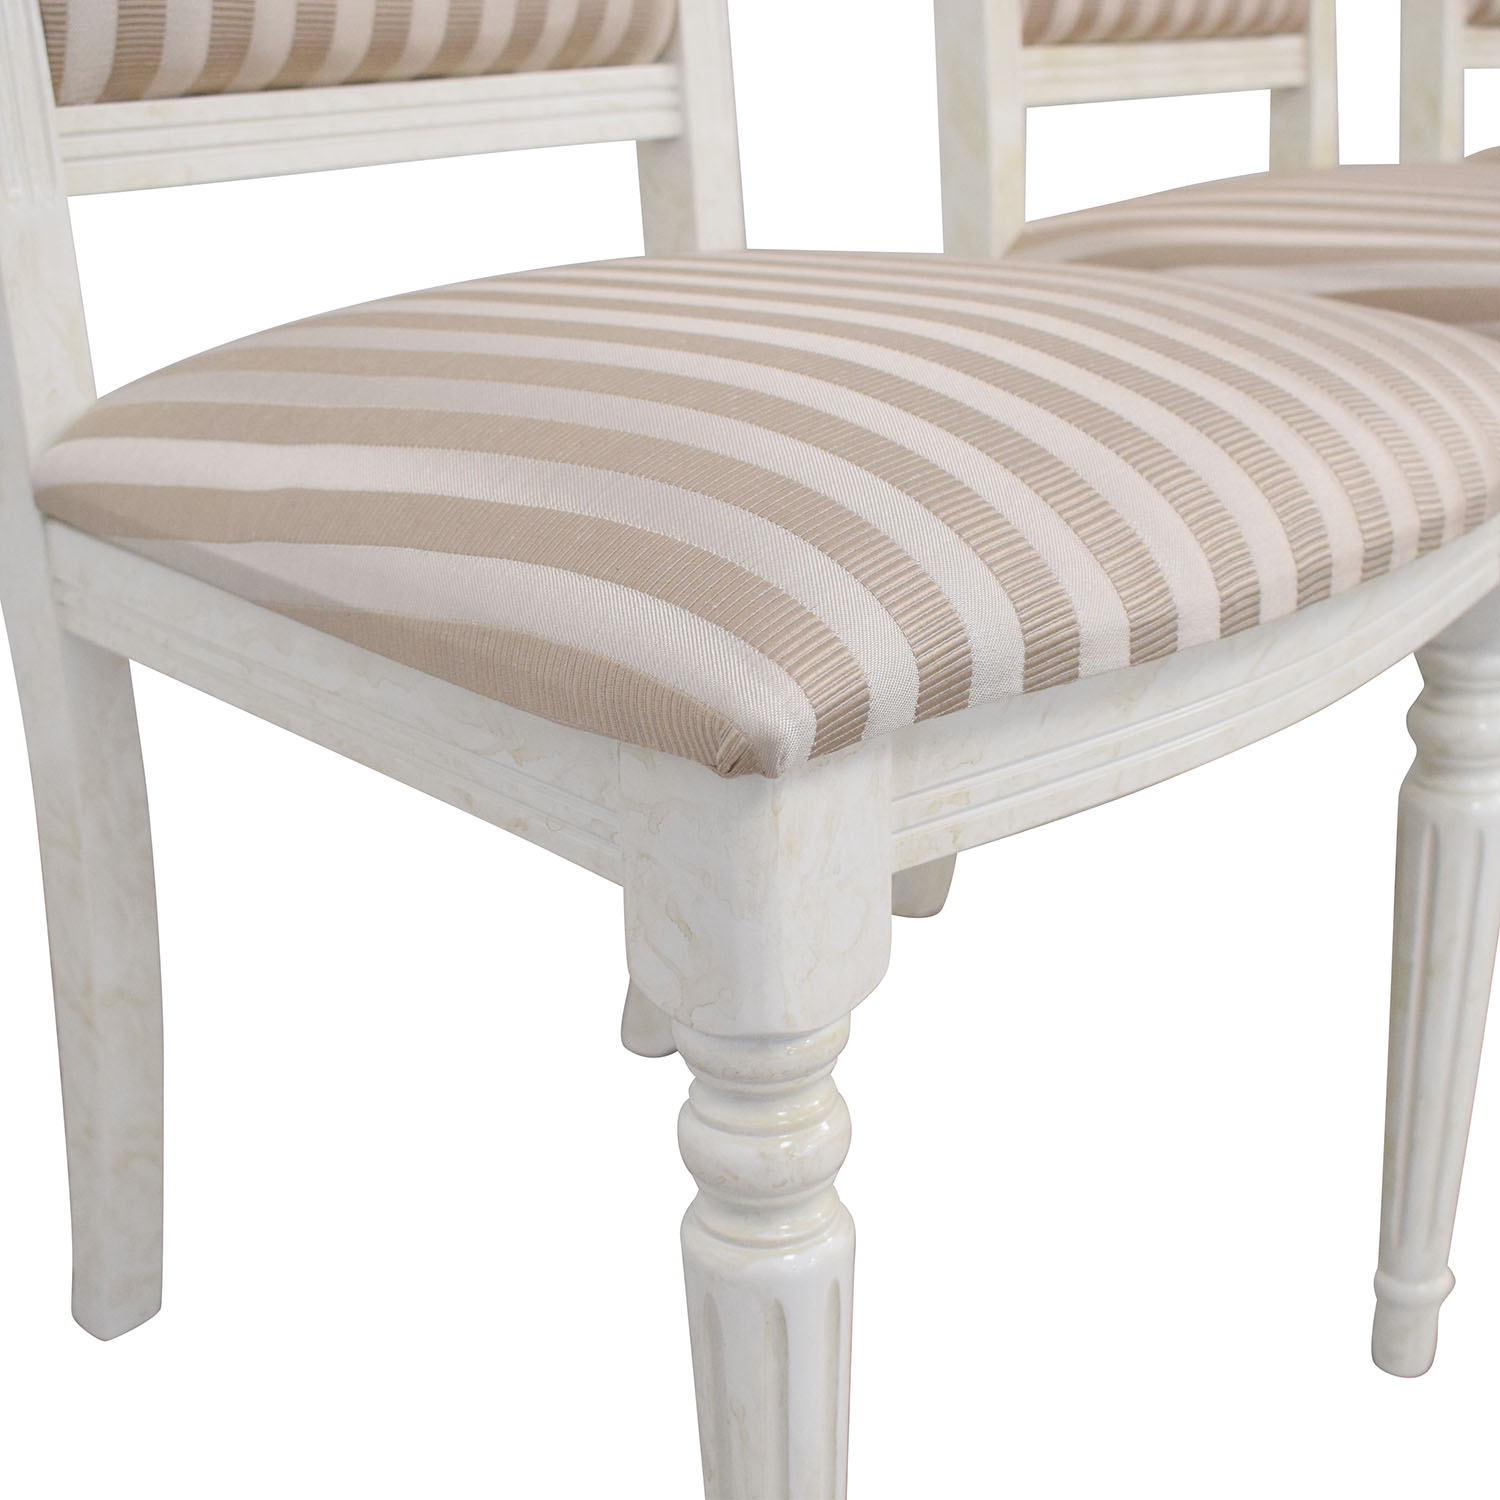 Arredoclassic Arredoclassic Italy Dining Chairs pa